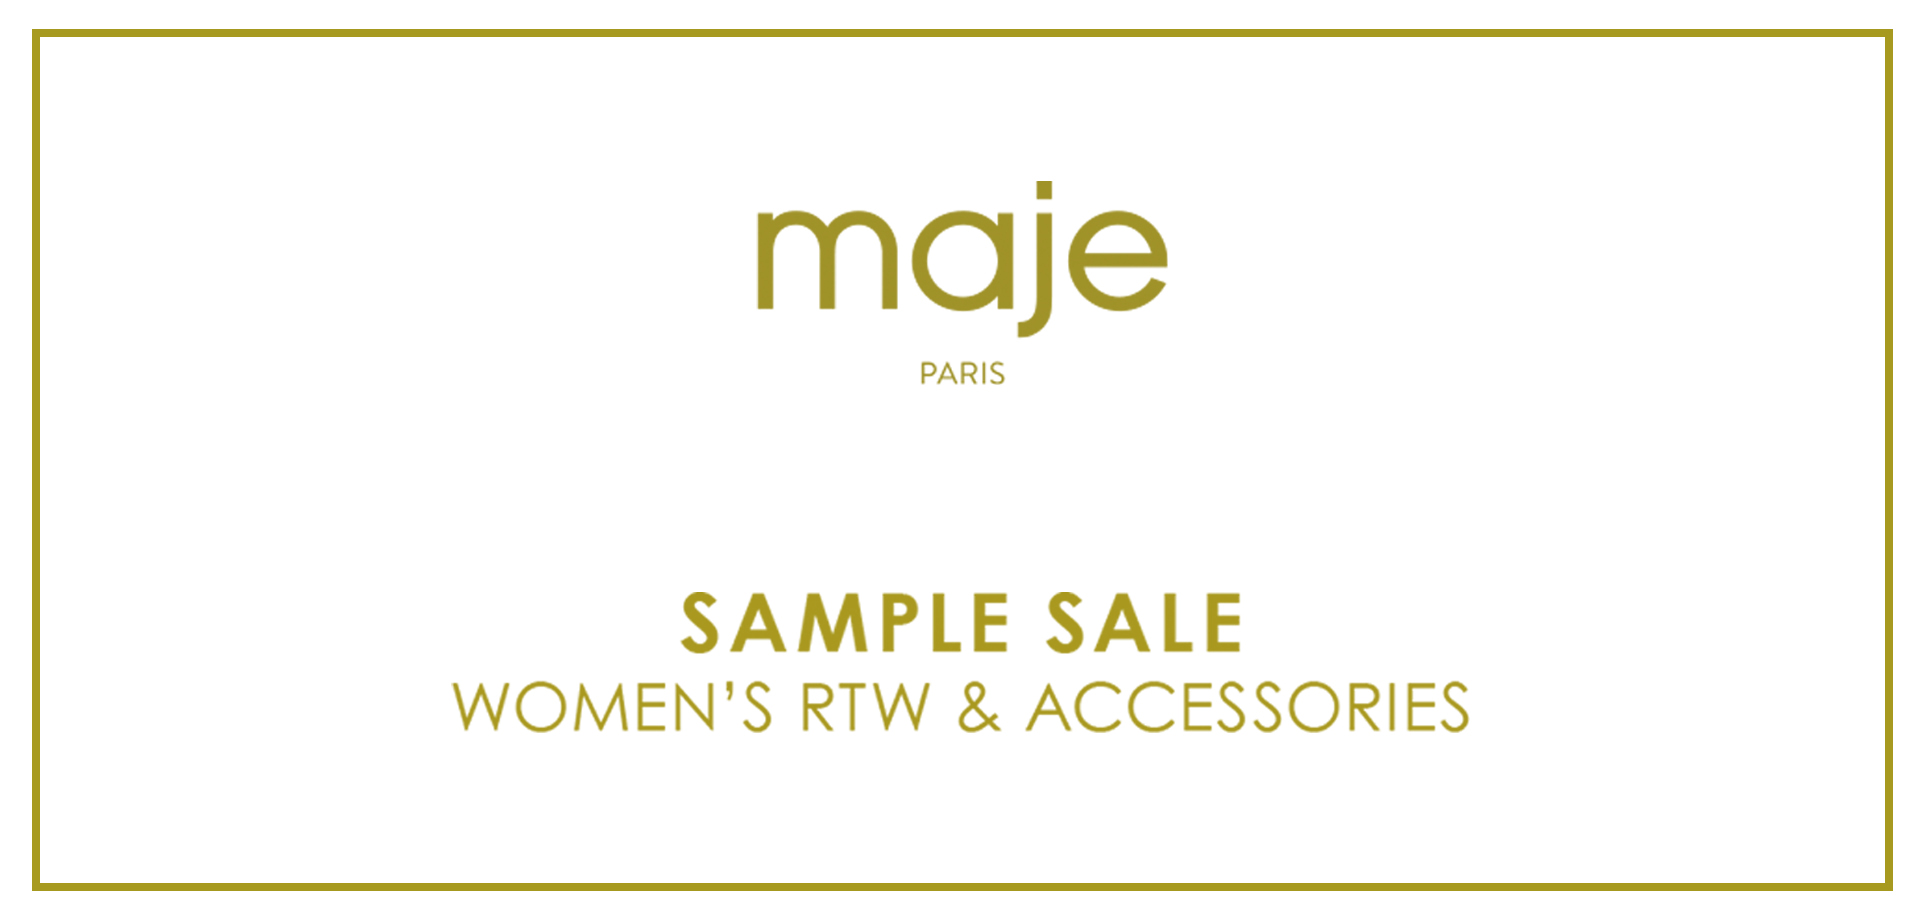 FBEvent_Maje-Sample-Sale_260NY_April19.jpg